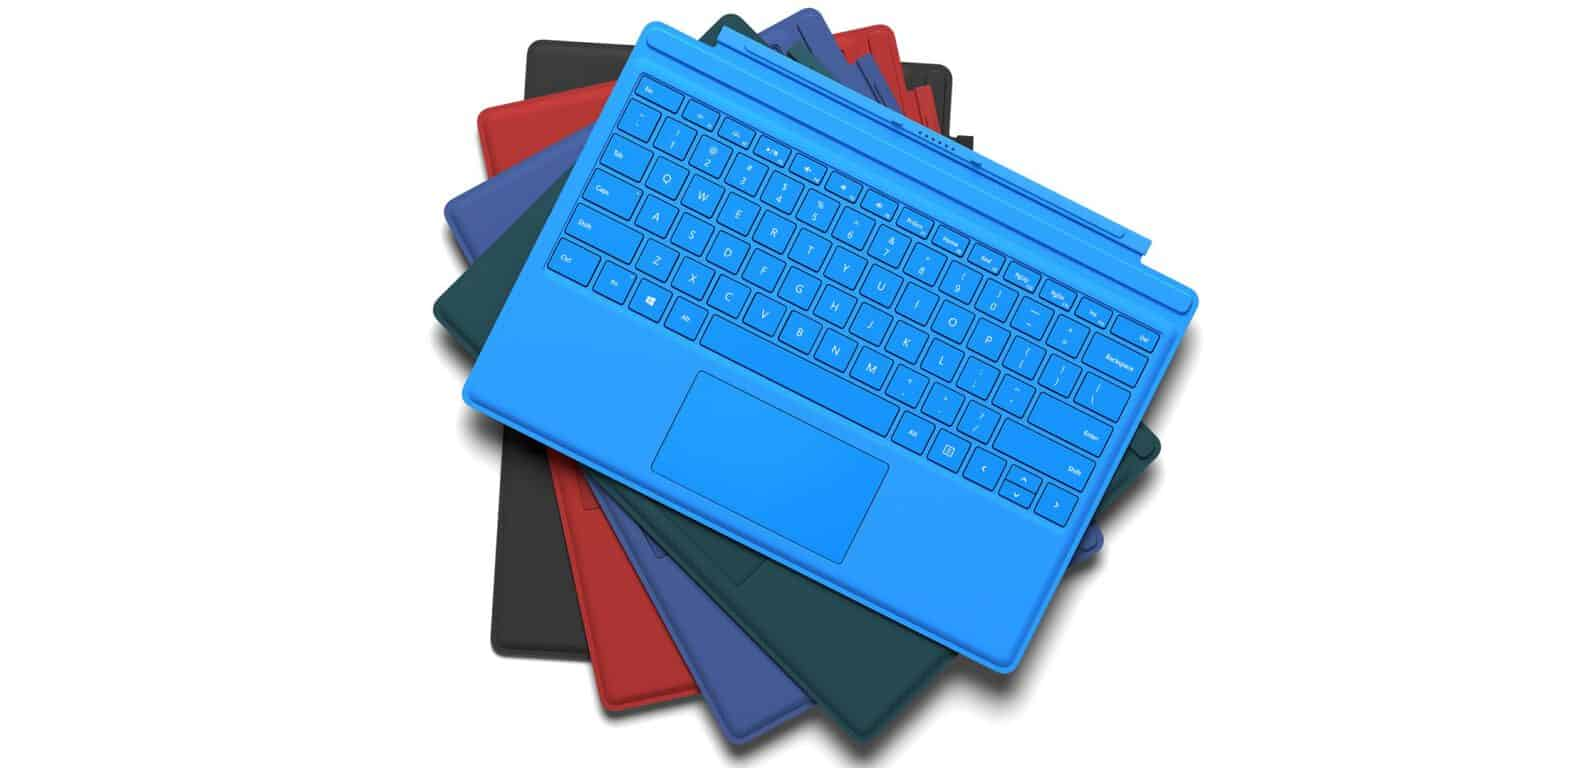 Surface-Pro-4-Type-Cover_group Microsoft's backward-compatible Surface accessories are giving the Surface Pro 3 new life